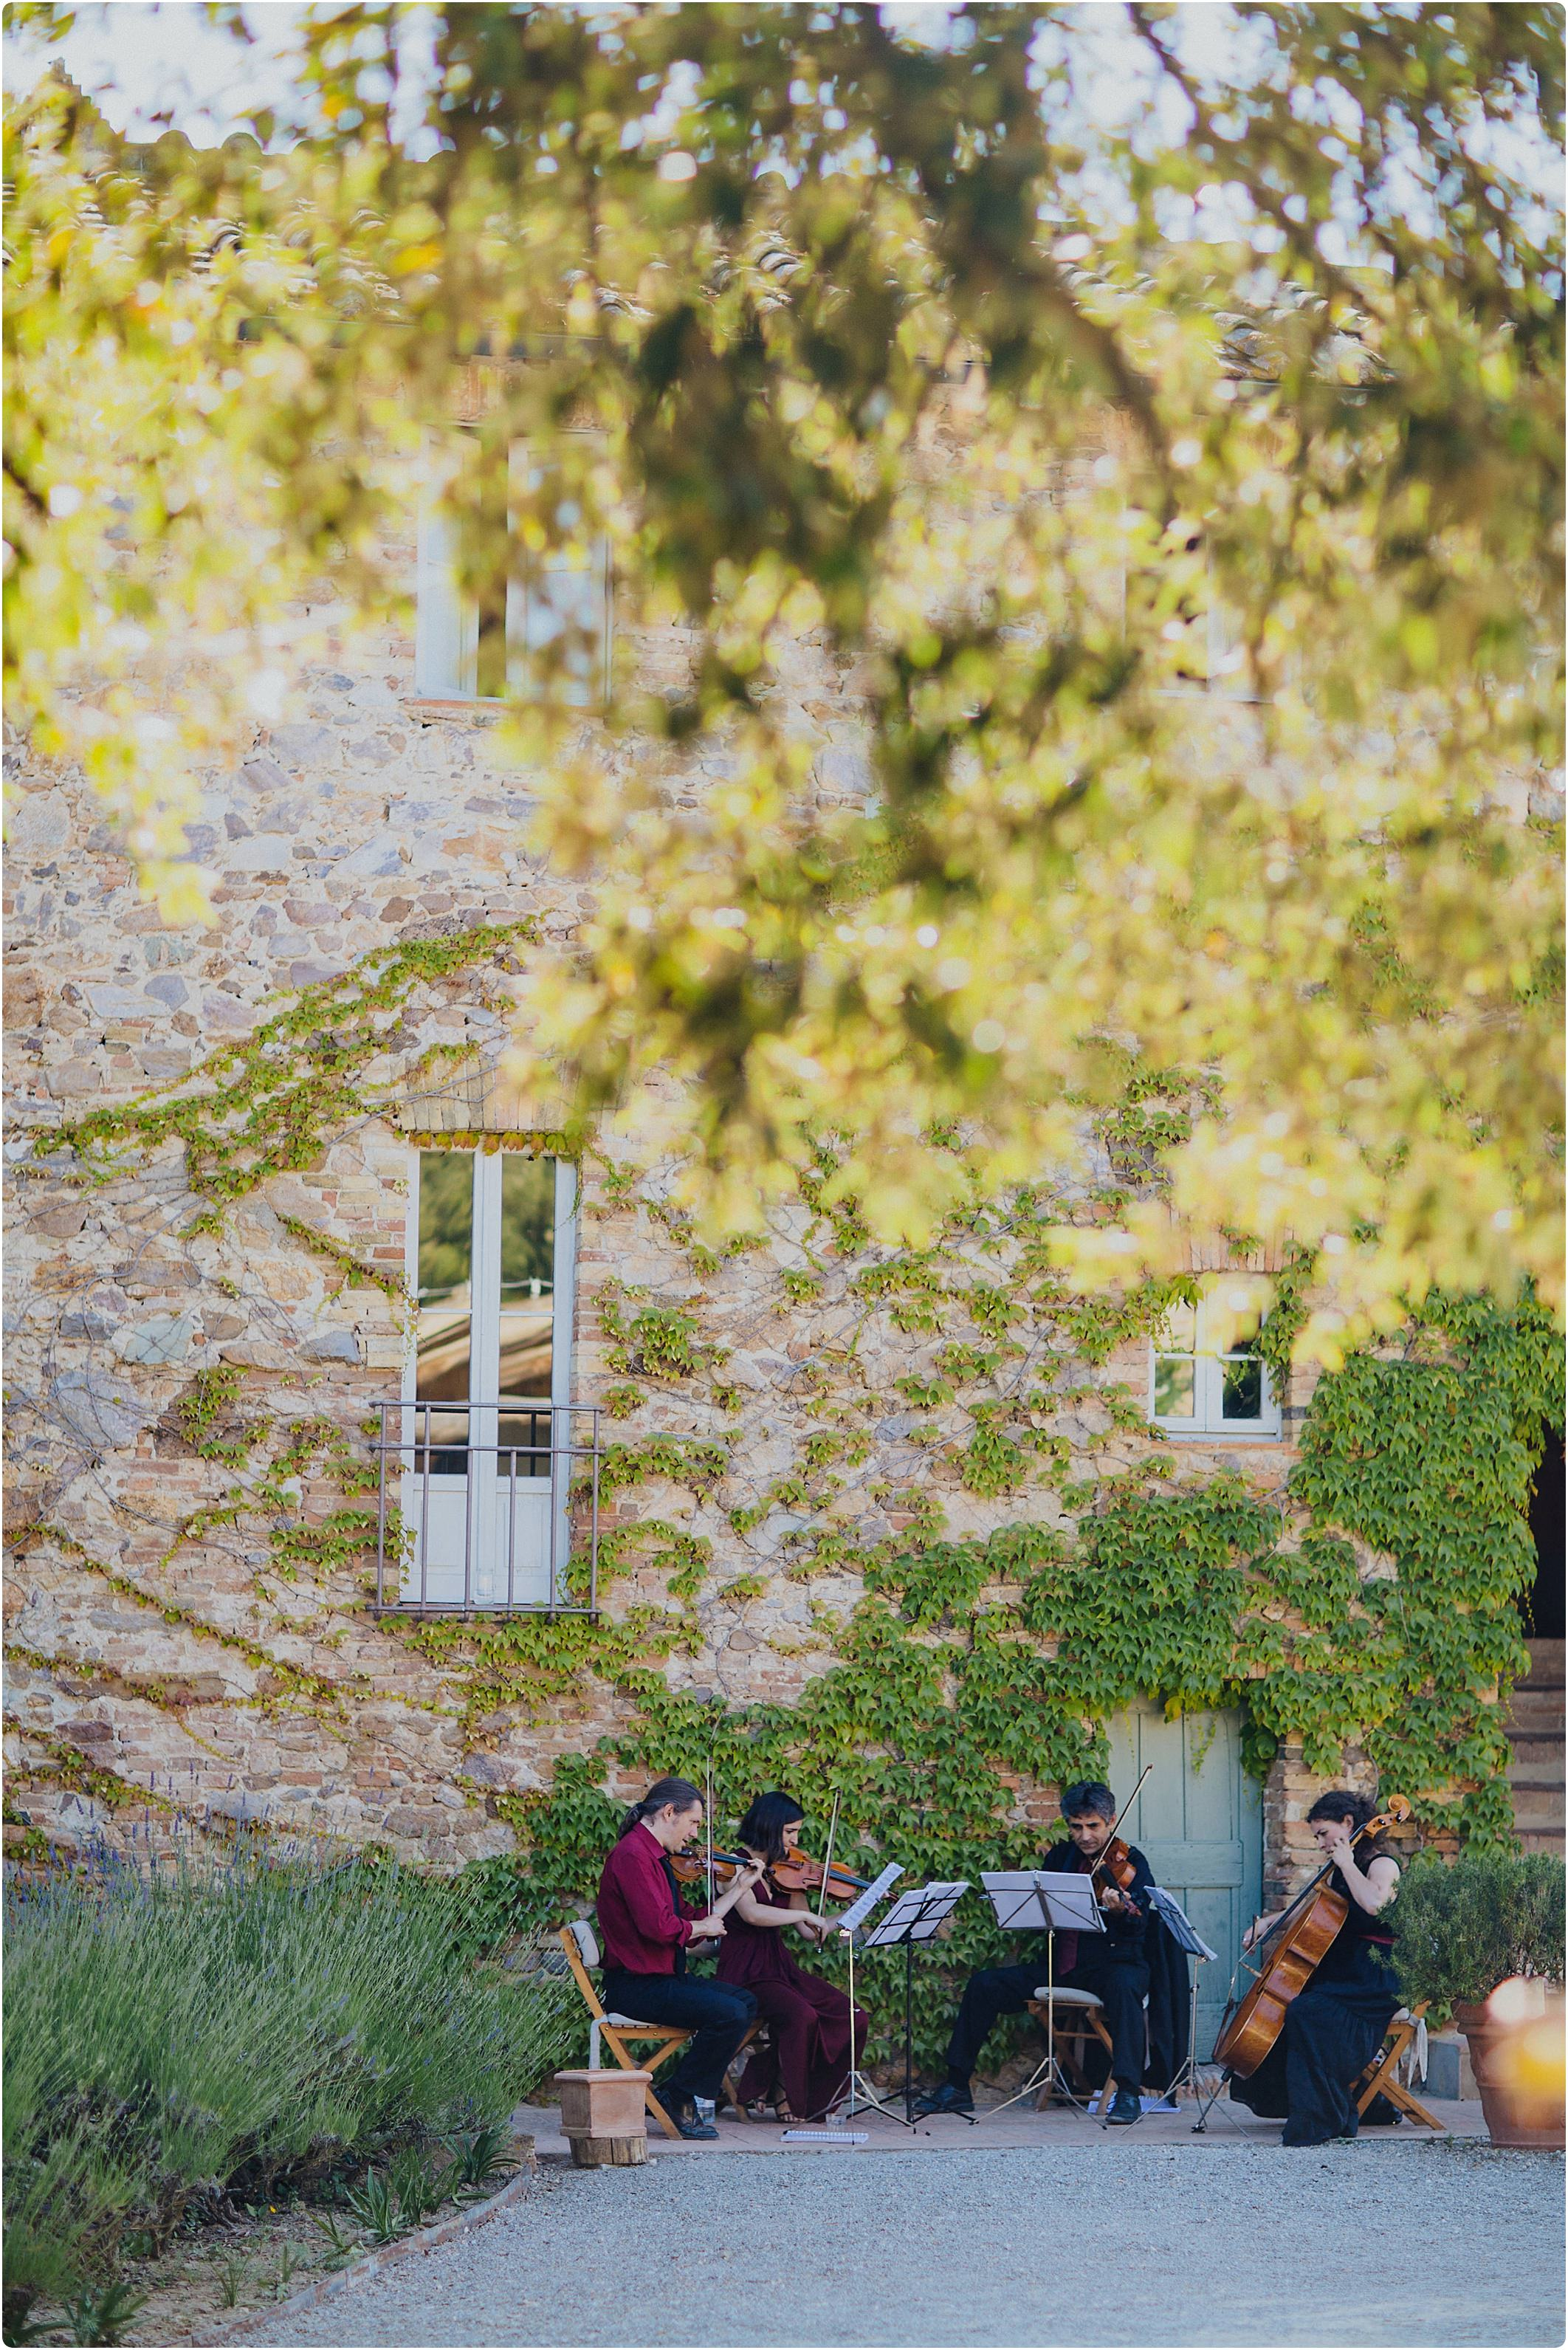 string quartet playing at a villa podernovo wedding